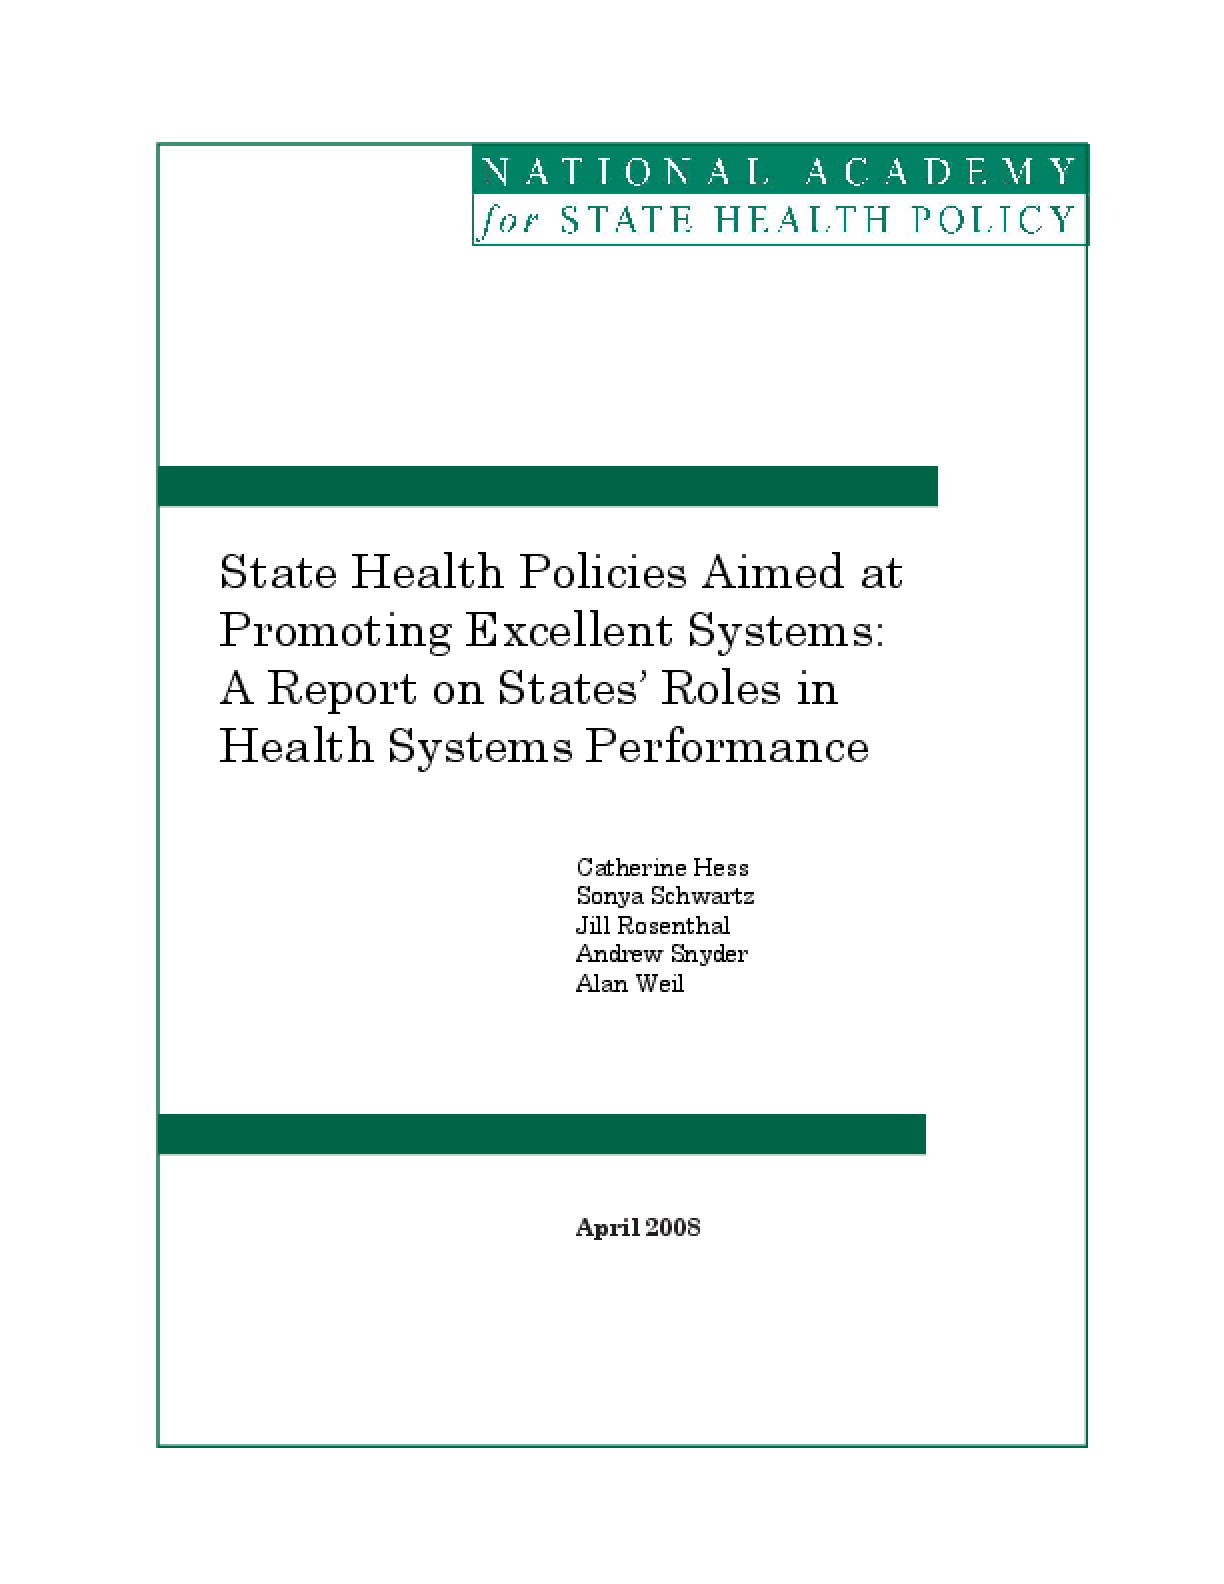 State Health Policies Aimed at Promoting Excellent Systems: A Report on States' Roles in Health Systems Performance